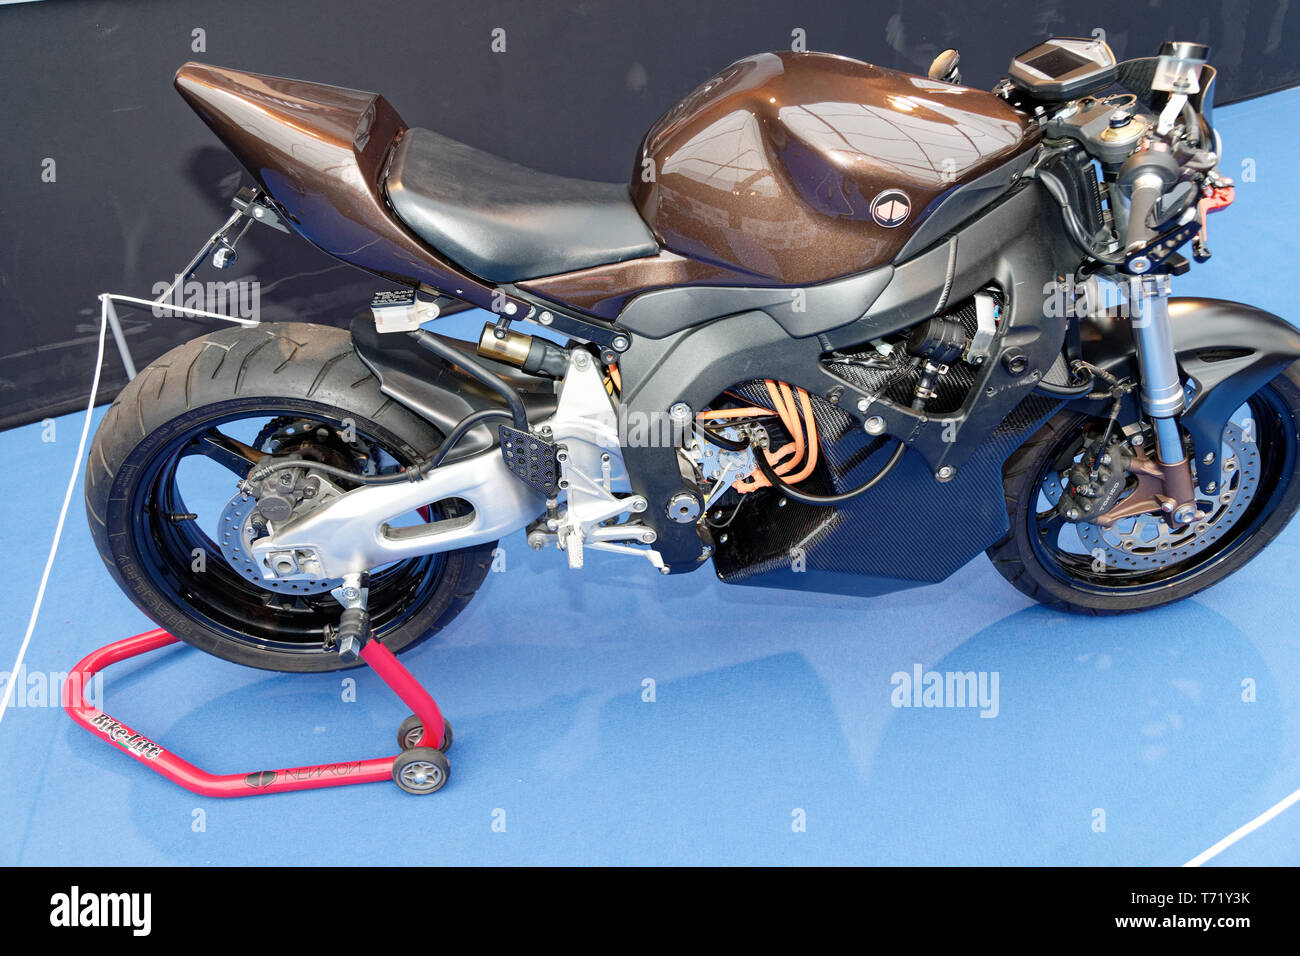 Newron Concept, electric motorcycle at the 34th International Automobile Festival.Credit:Veronique Phitoussi/Alamy Stock Photo Stock Photo